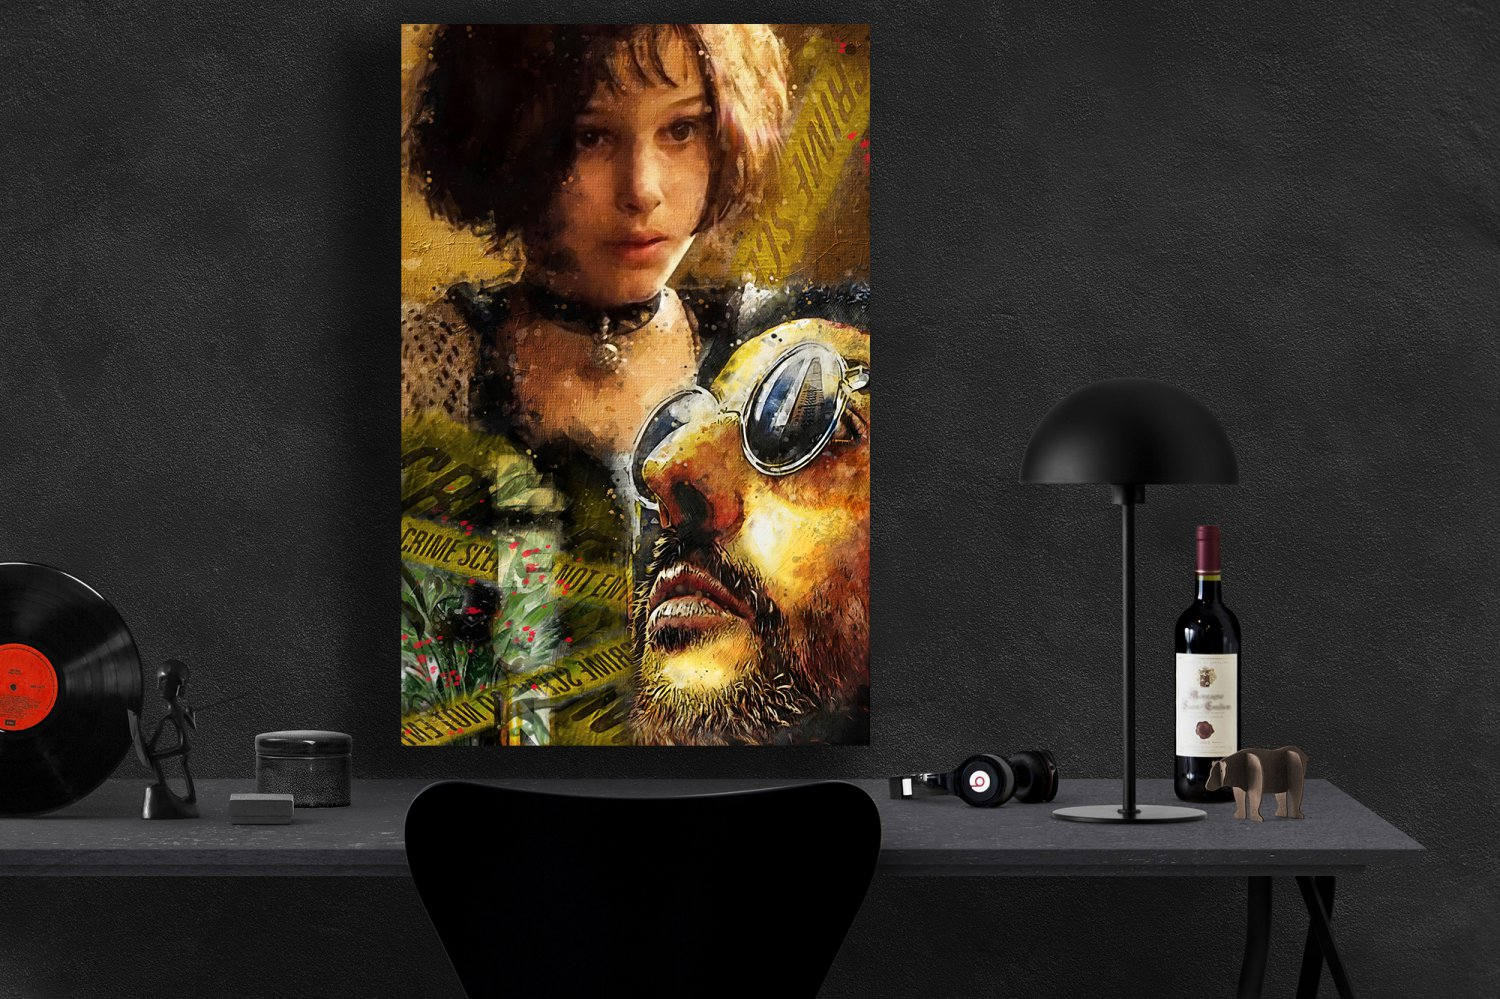 Leon The Professional 1994 Jean Reno, Gary Oldman, Natalie Portman  24x35 inches Canvas Print